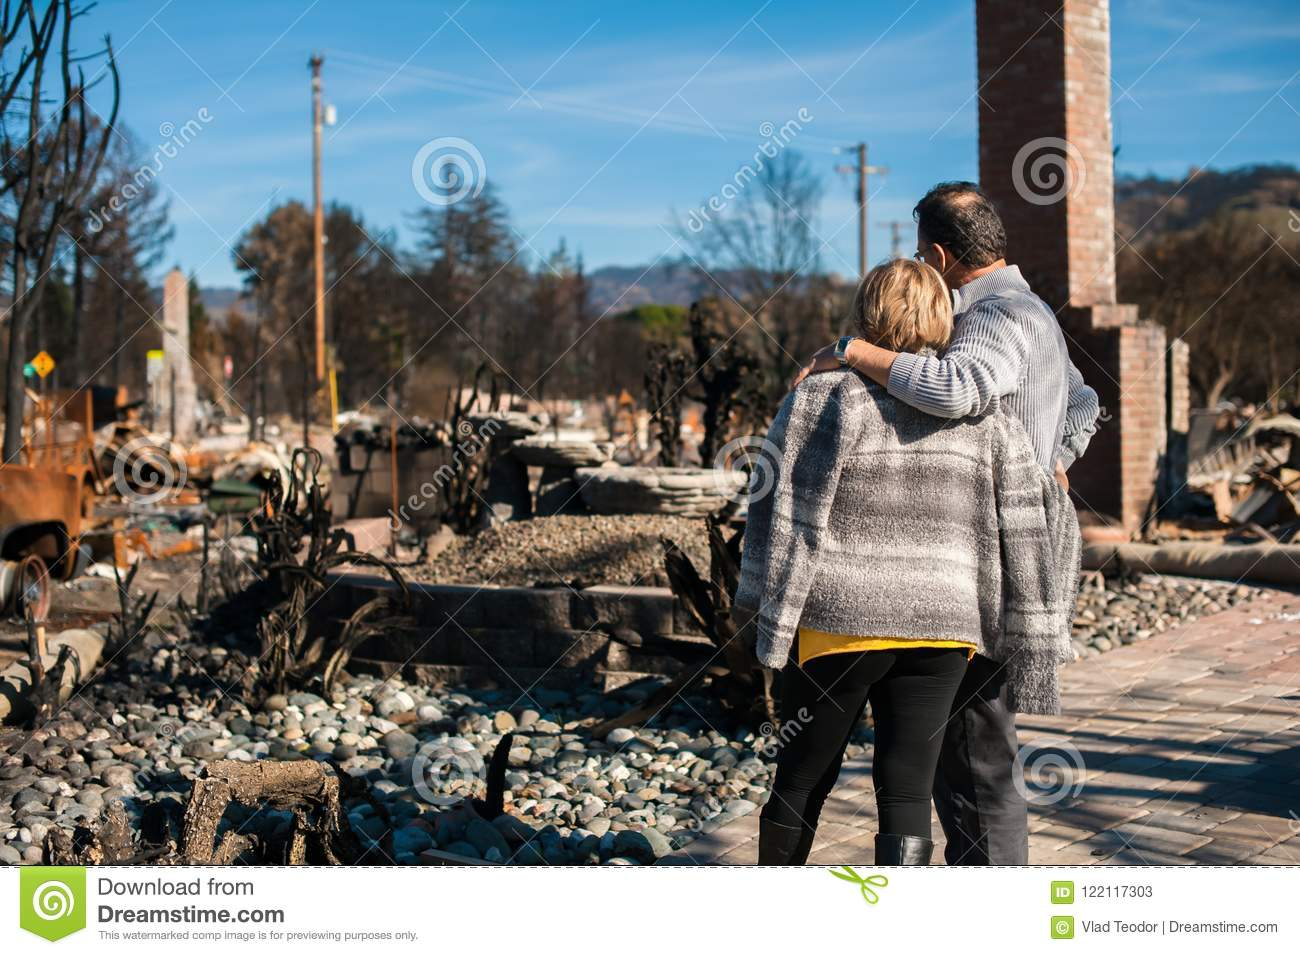 Owners, checking burned and ruined house and yard after fire